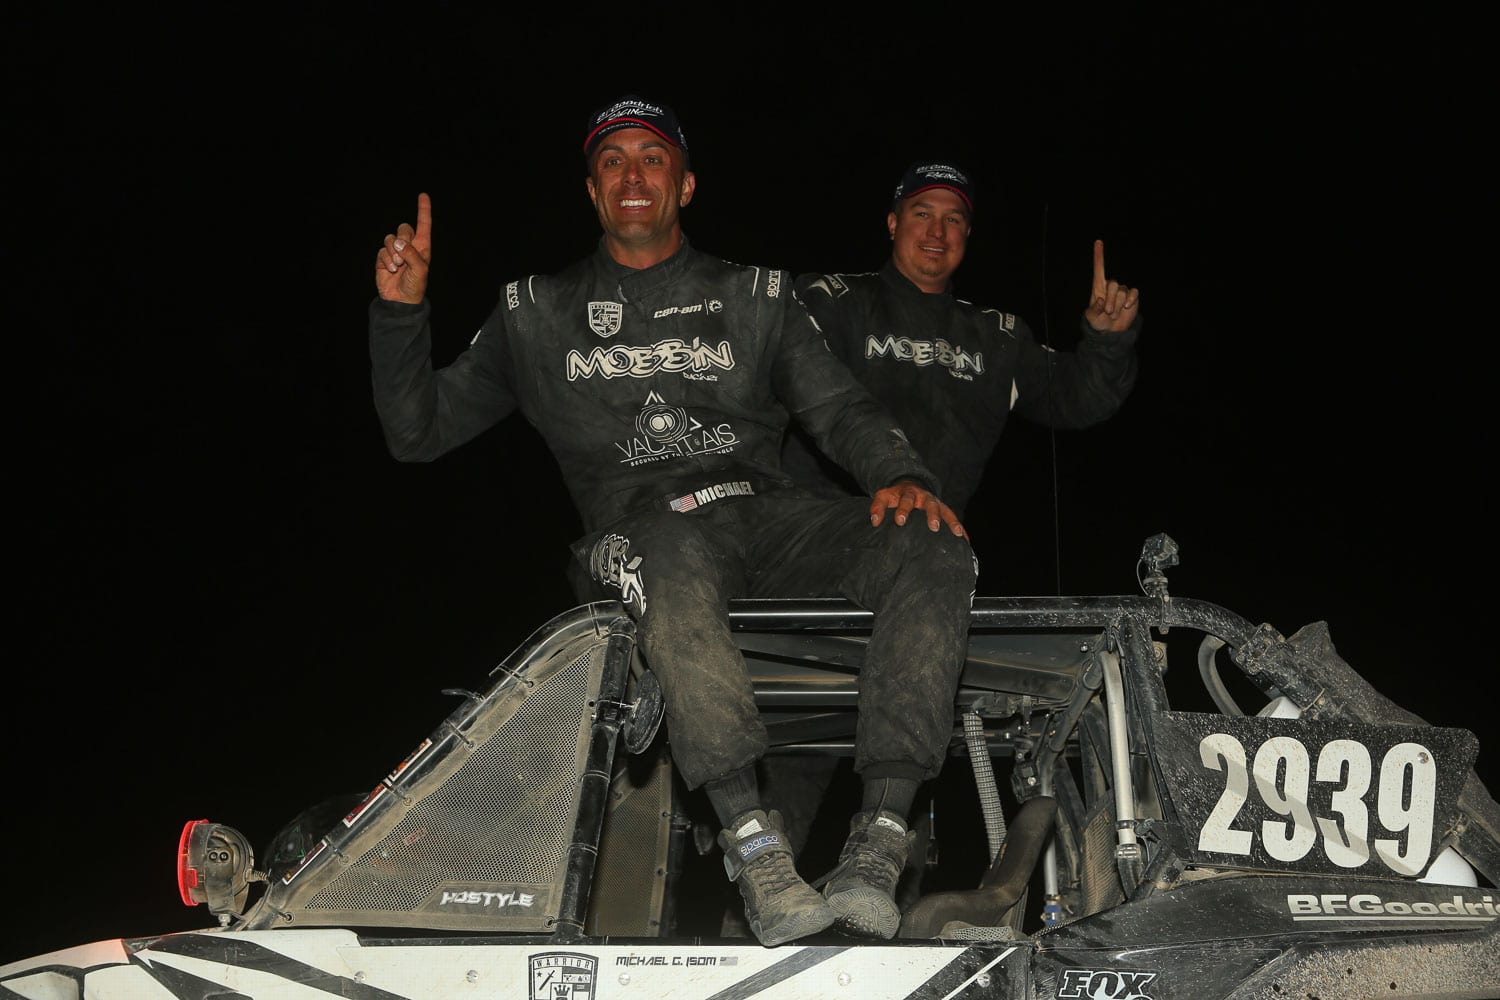 Maverick X3 Racers win BITD Silver State